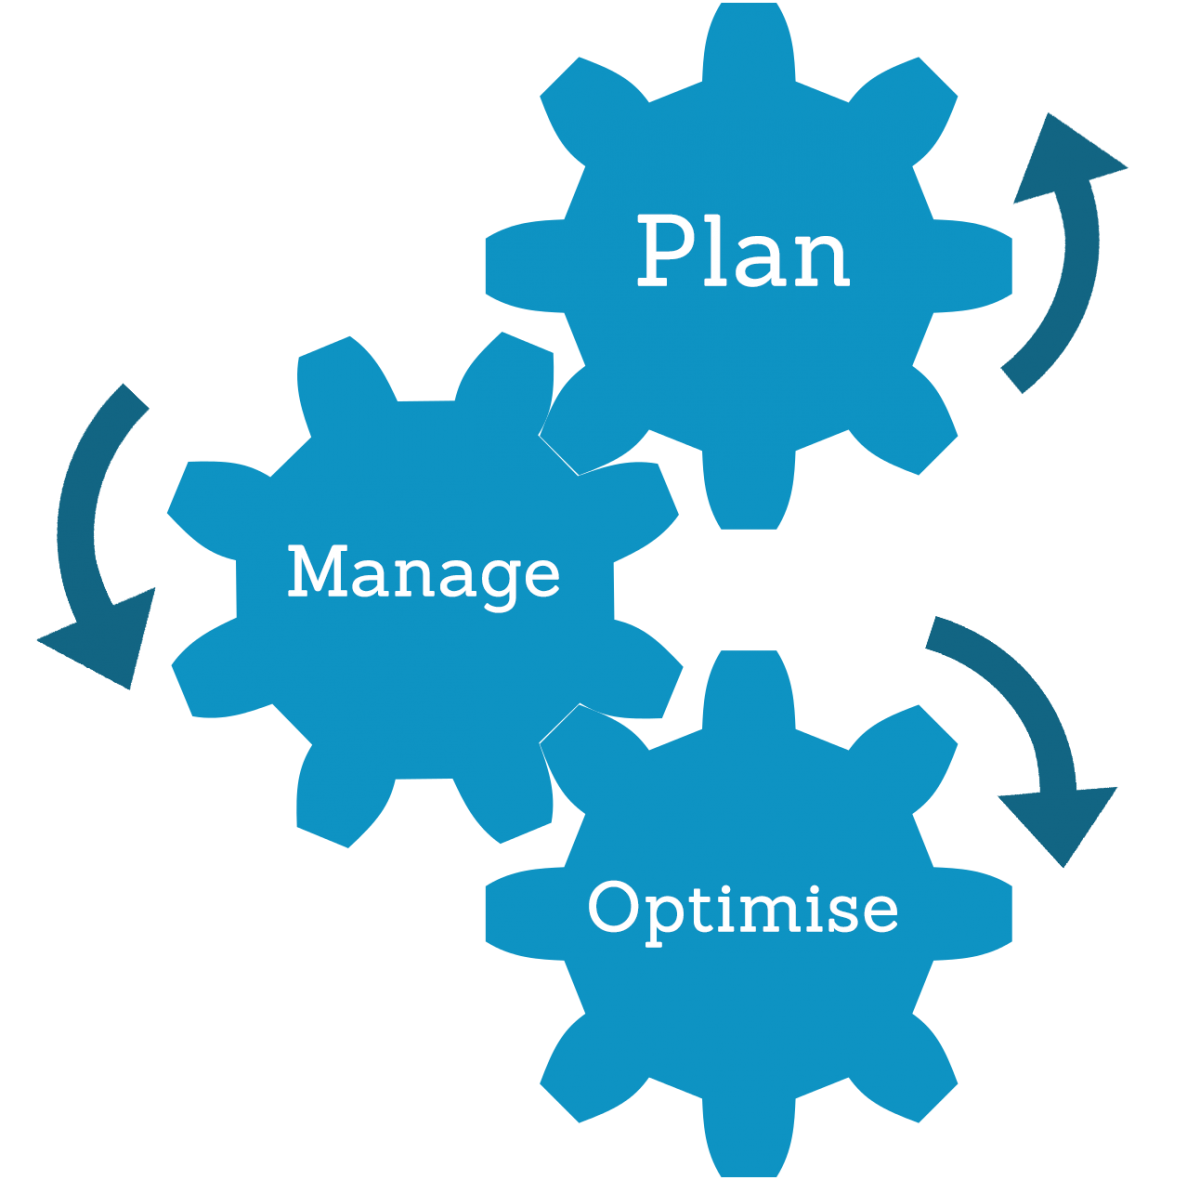 Plan. Manage. Optimise.